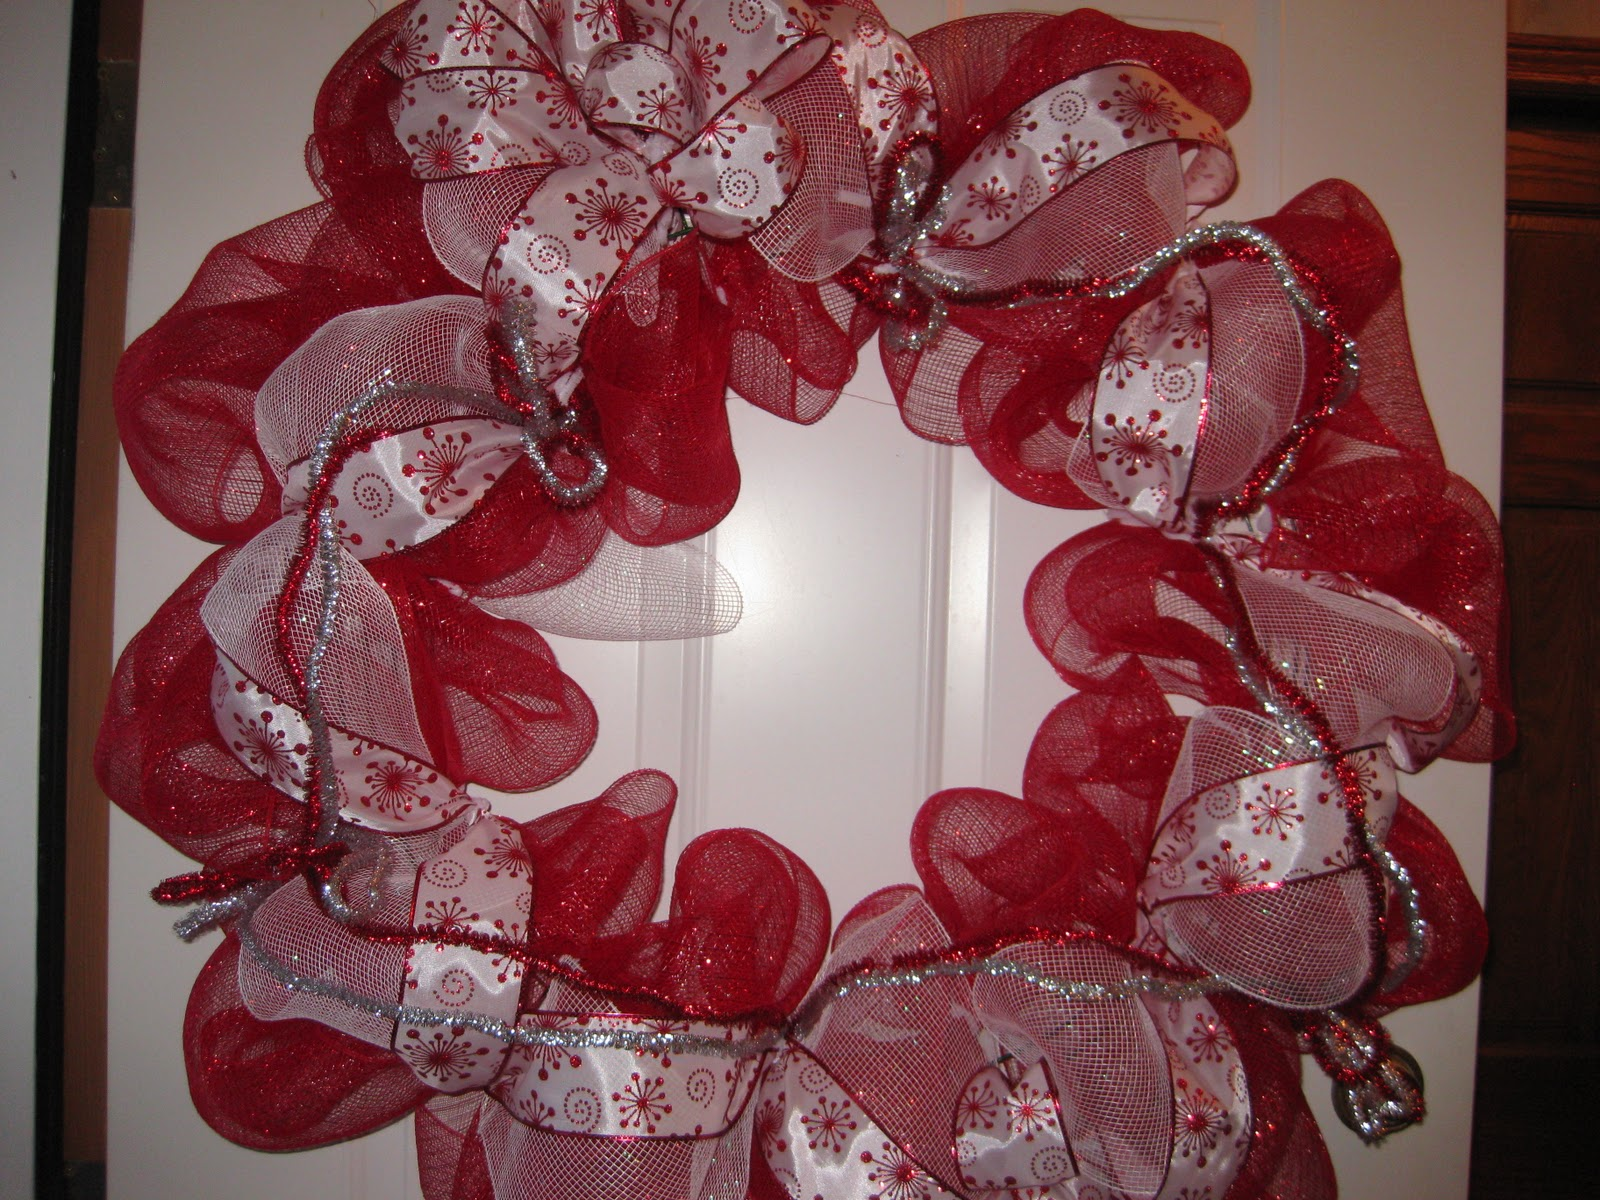 How to make a christmas wreath with mesh - Mesh Ribbon Craft Ideas Mesh Wreath